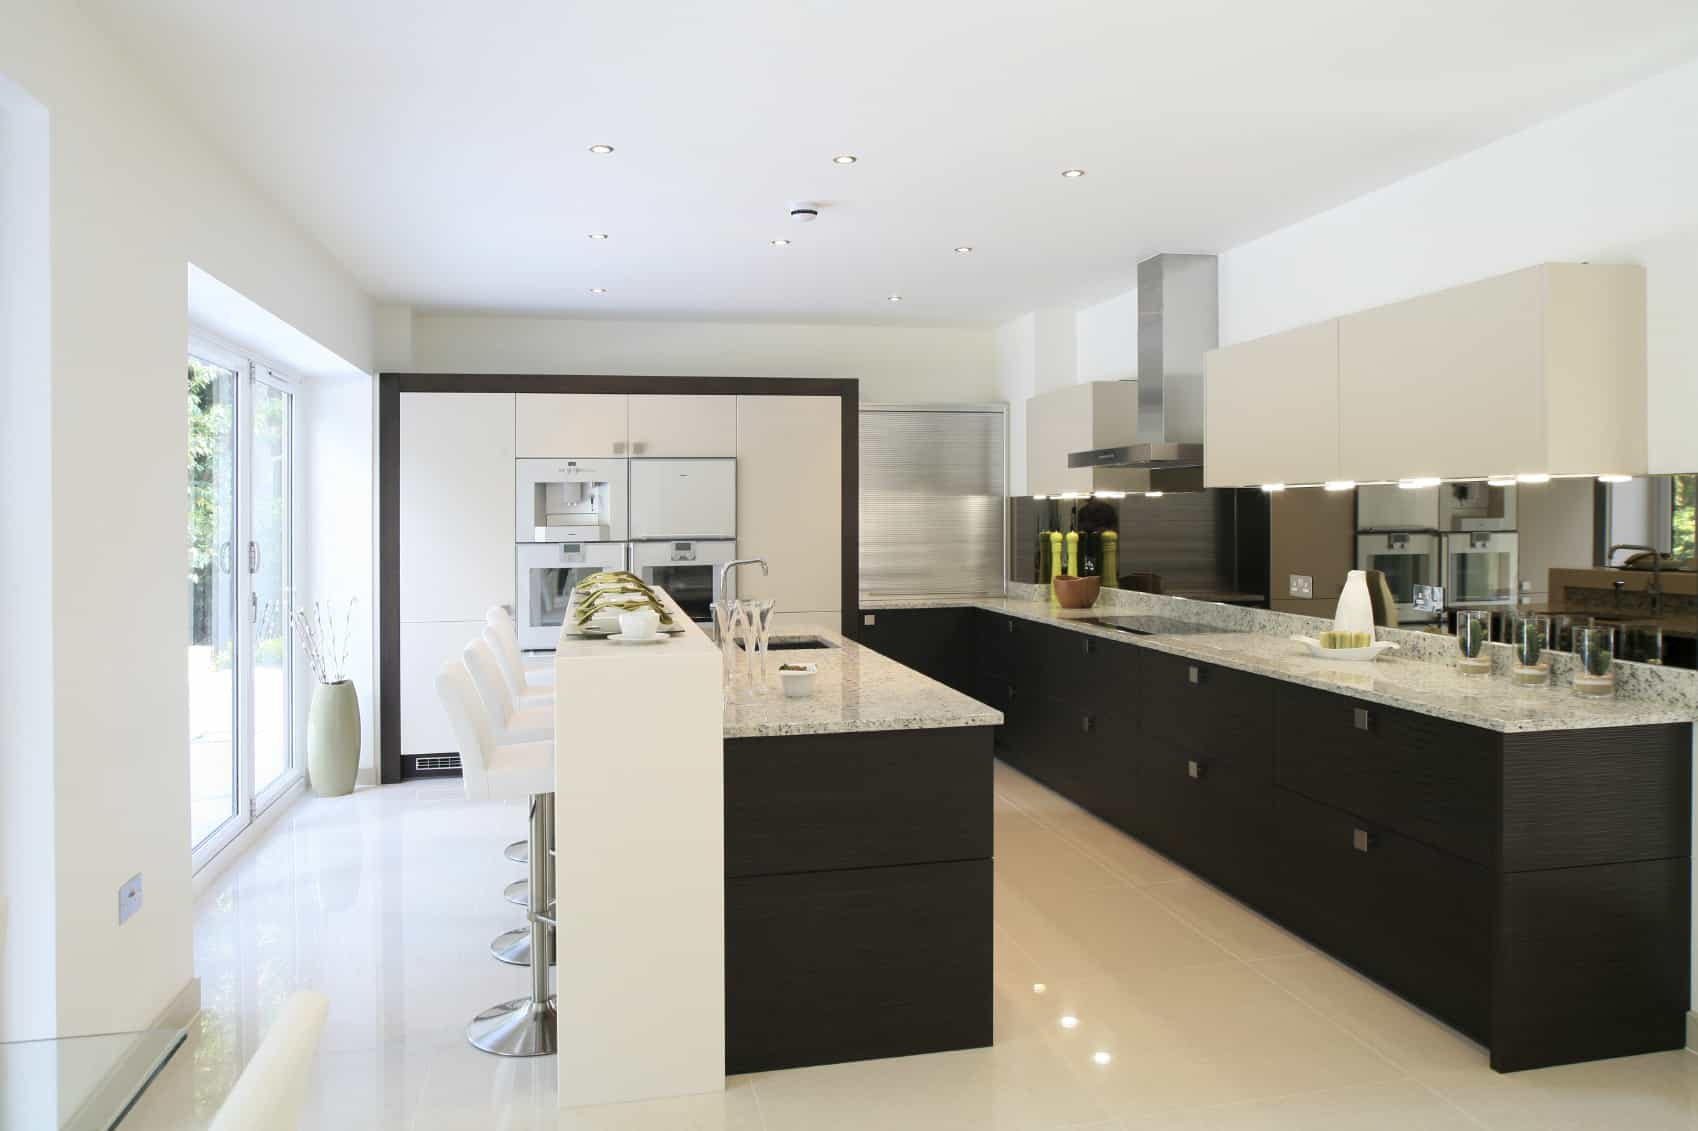 Luxury kitchen with black kitchen counters and a white breakfast bar featuring a set of modern bar stools.